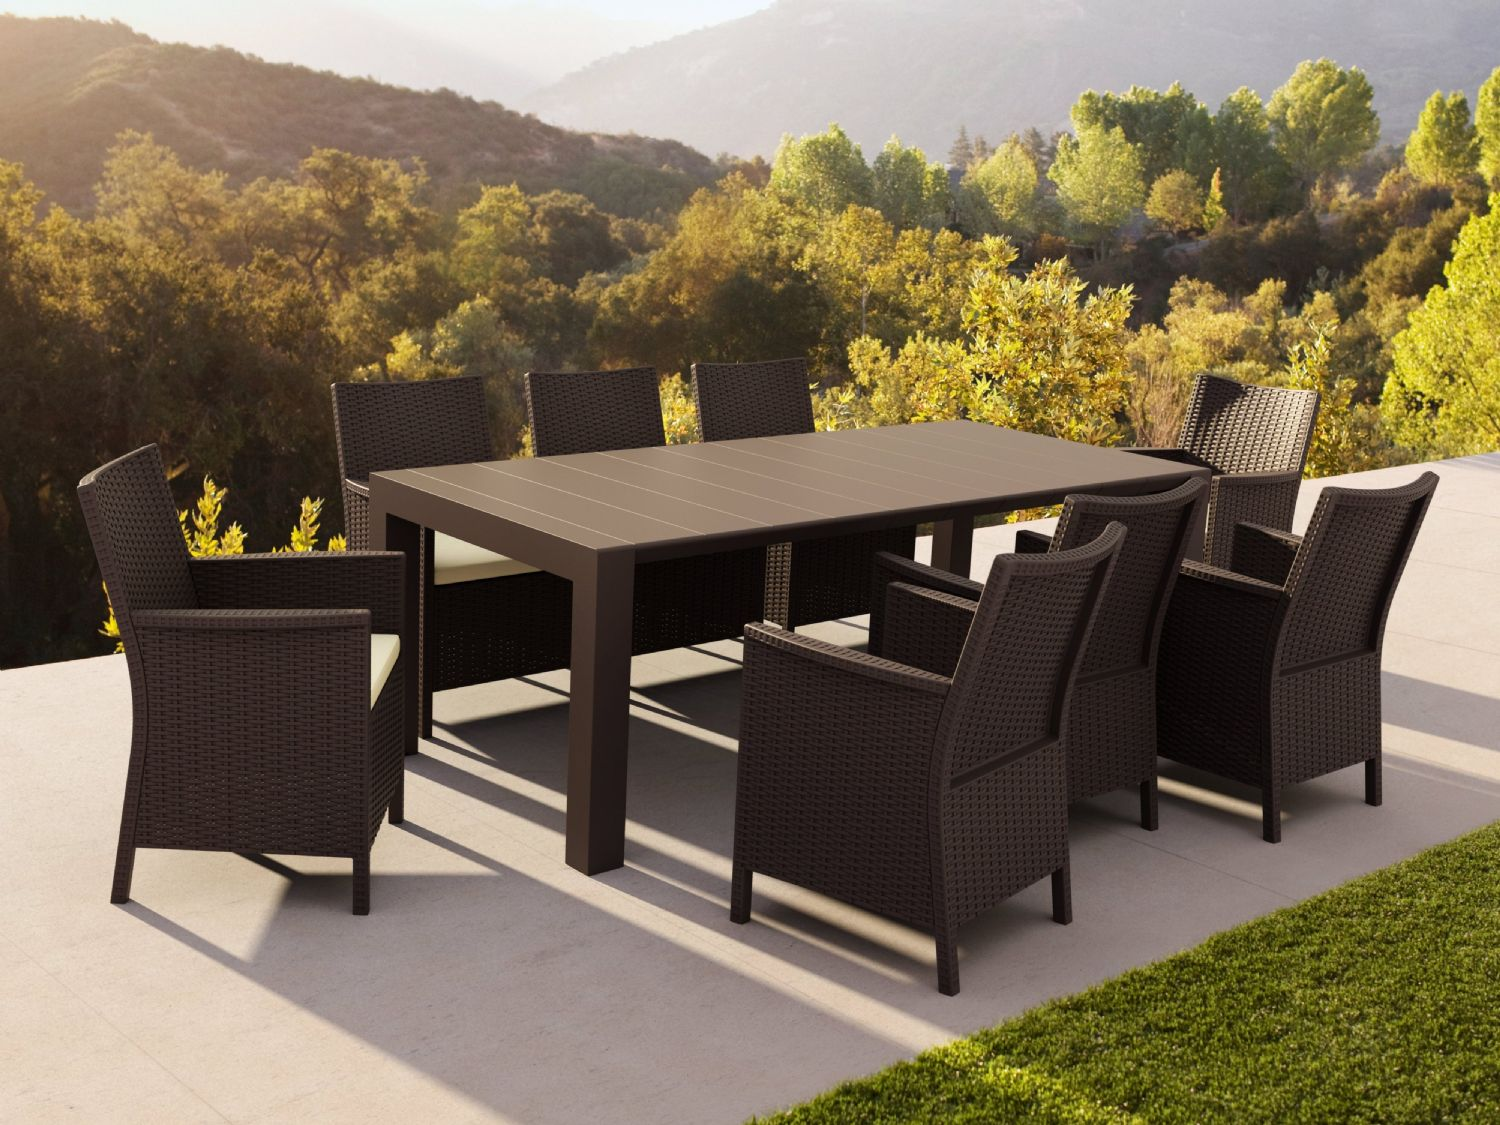 California Extendable Dining Set 9 Piece White ISP8066S-WH - 1